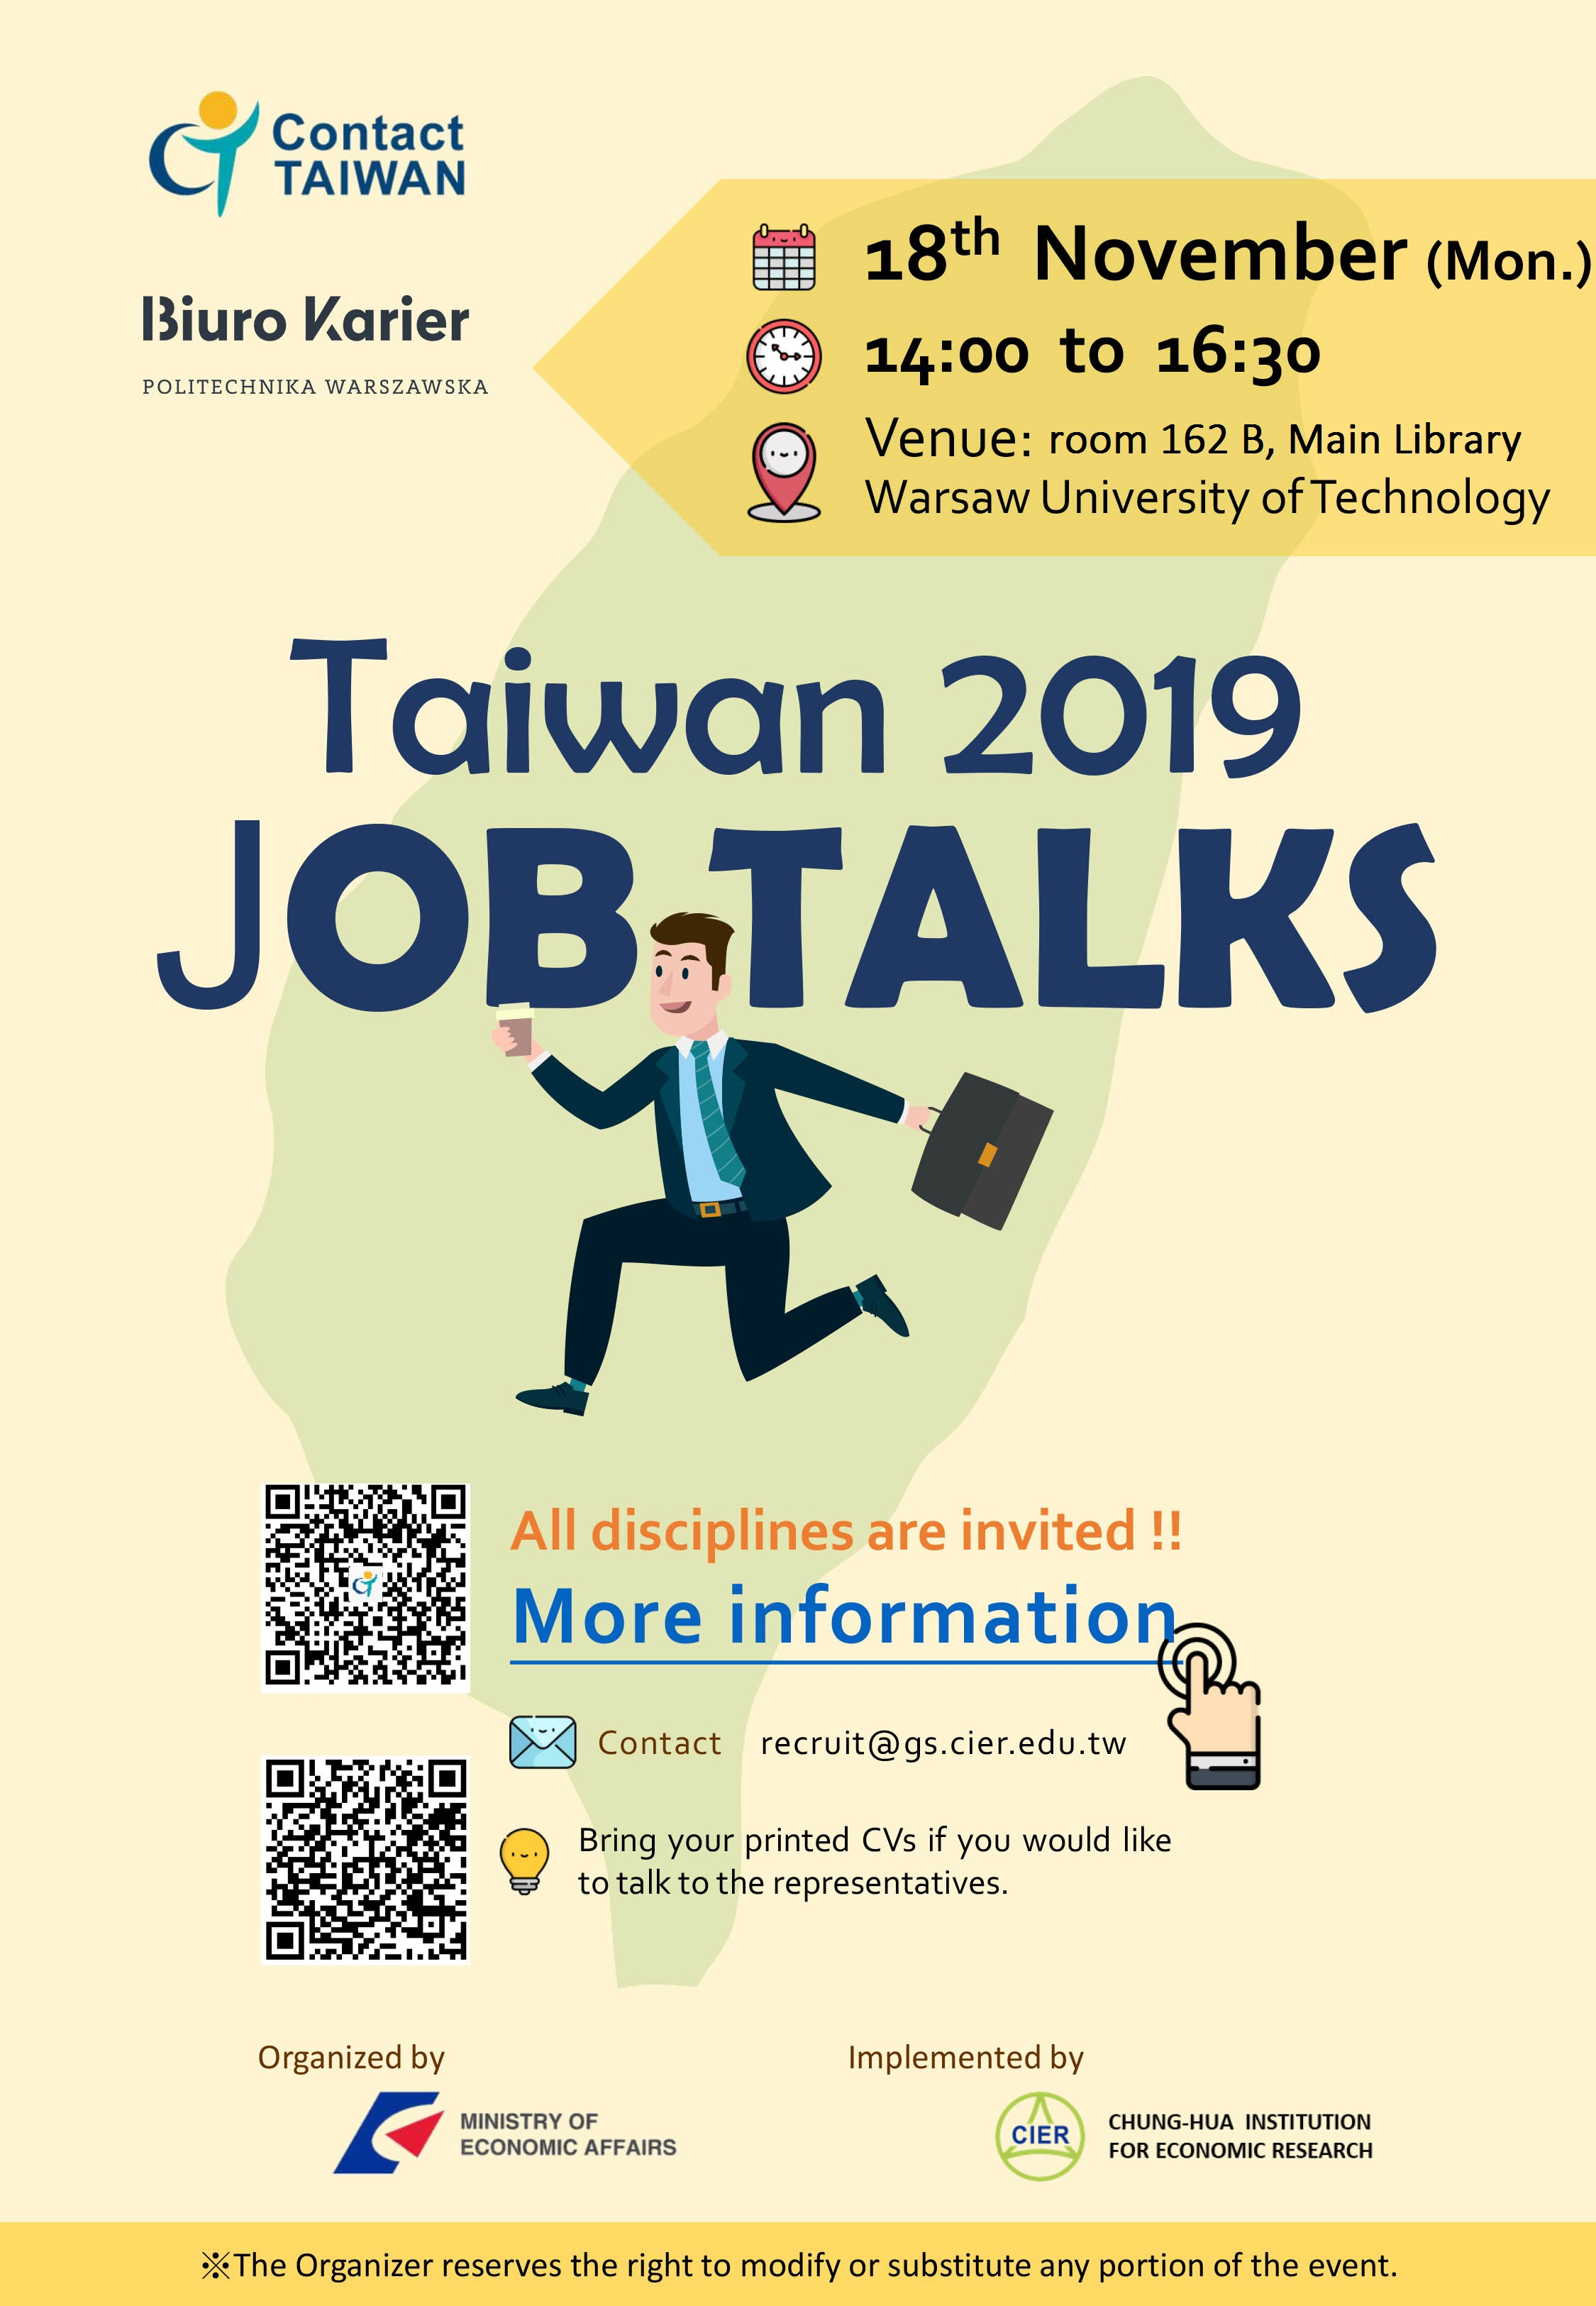 Taiwan Job Talks - event for Polish and international students